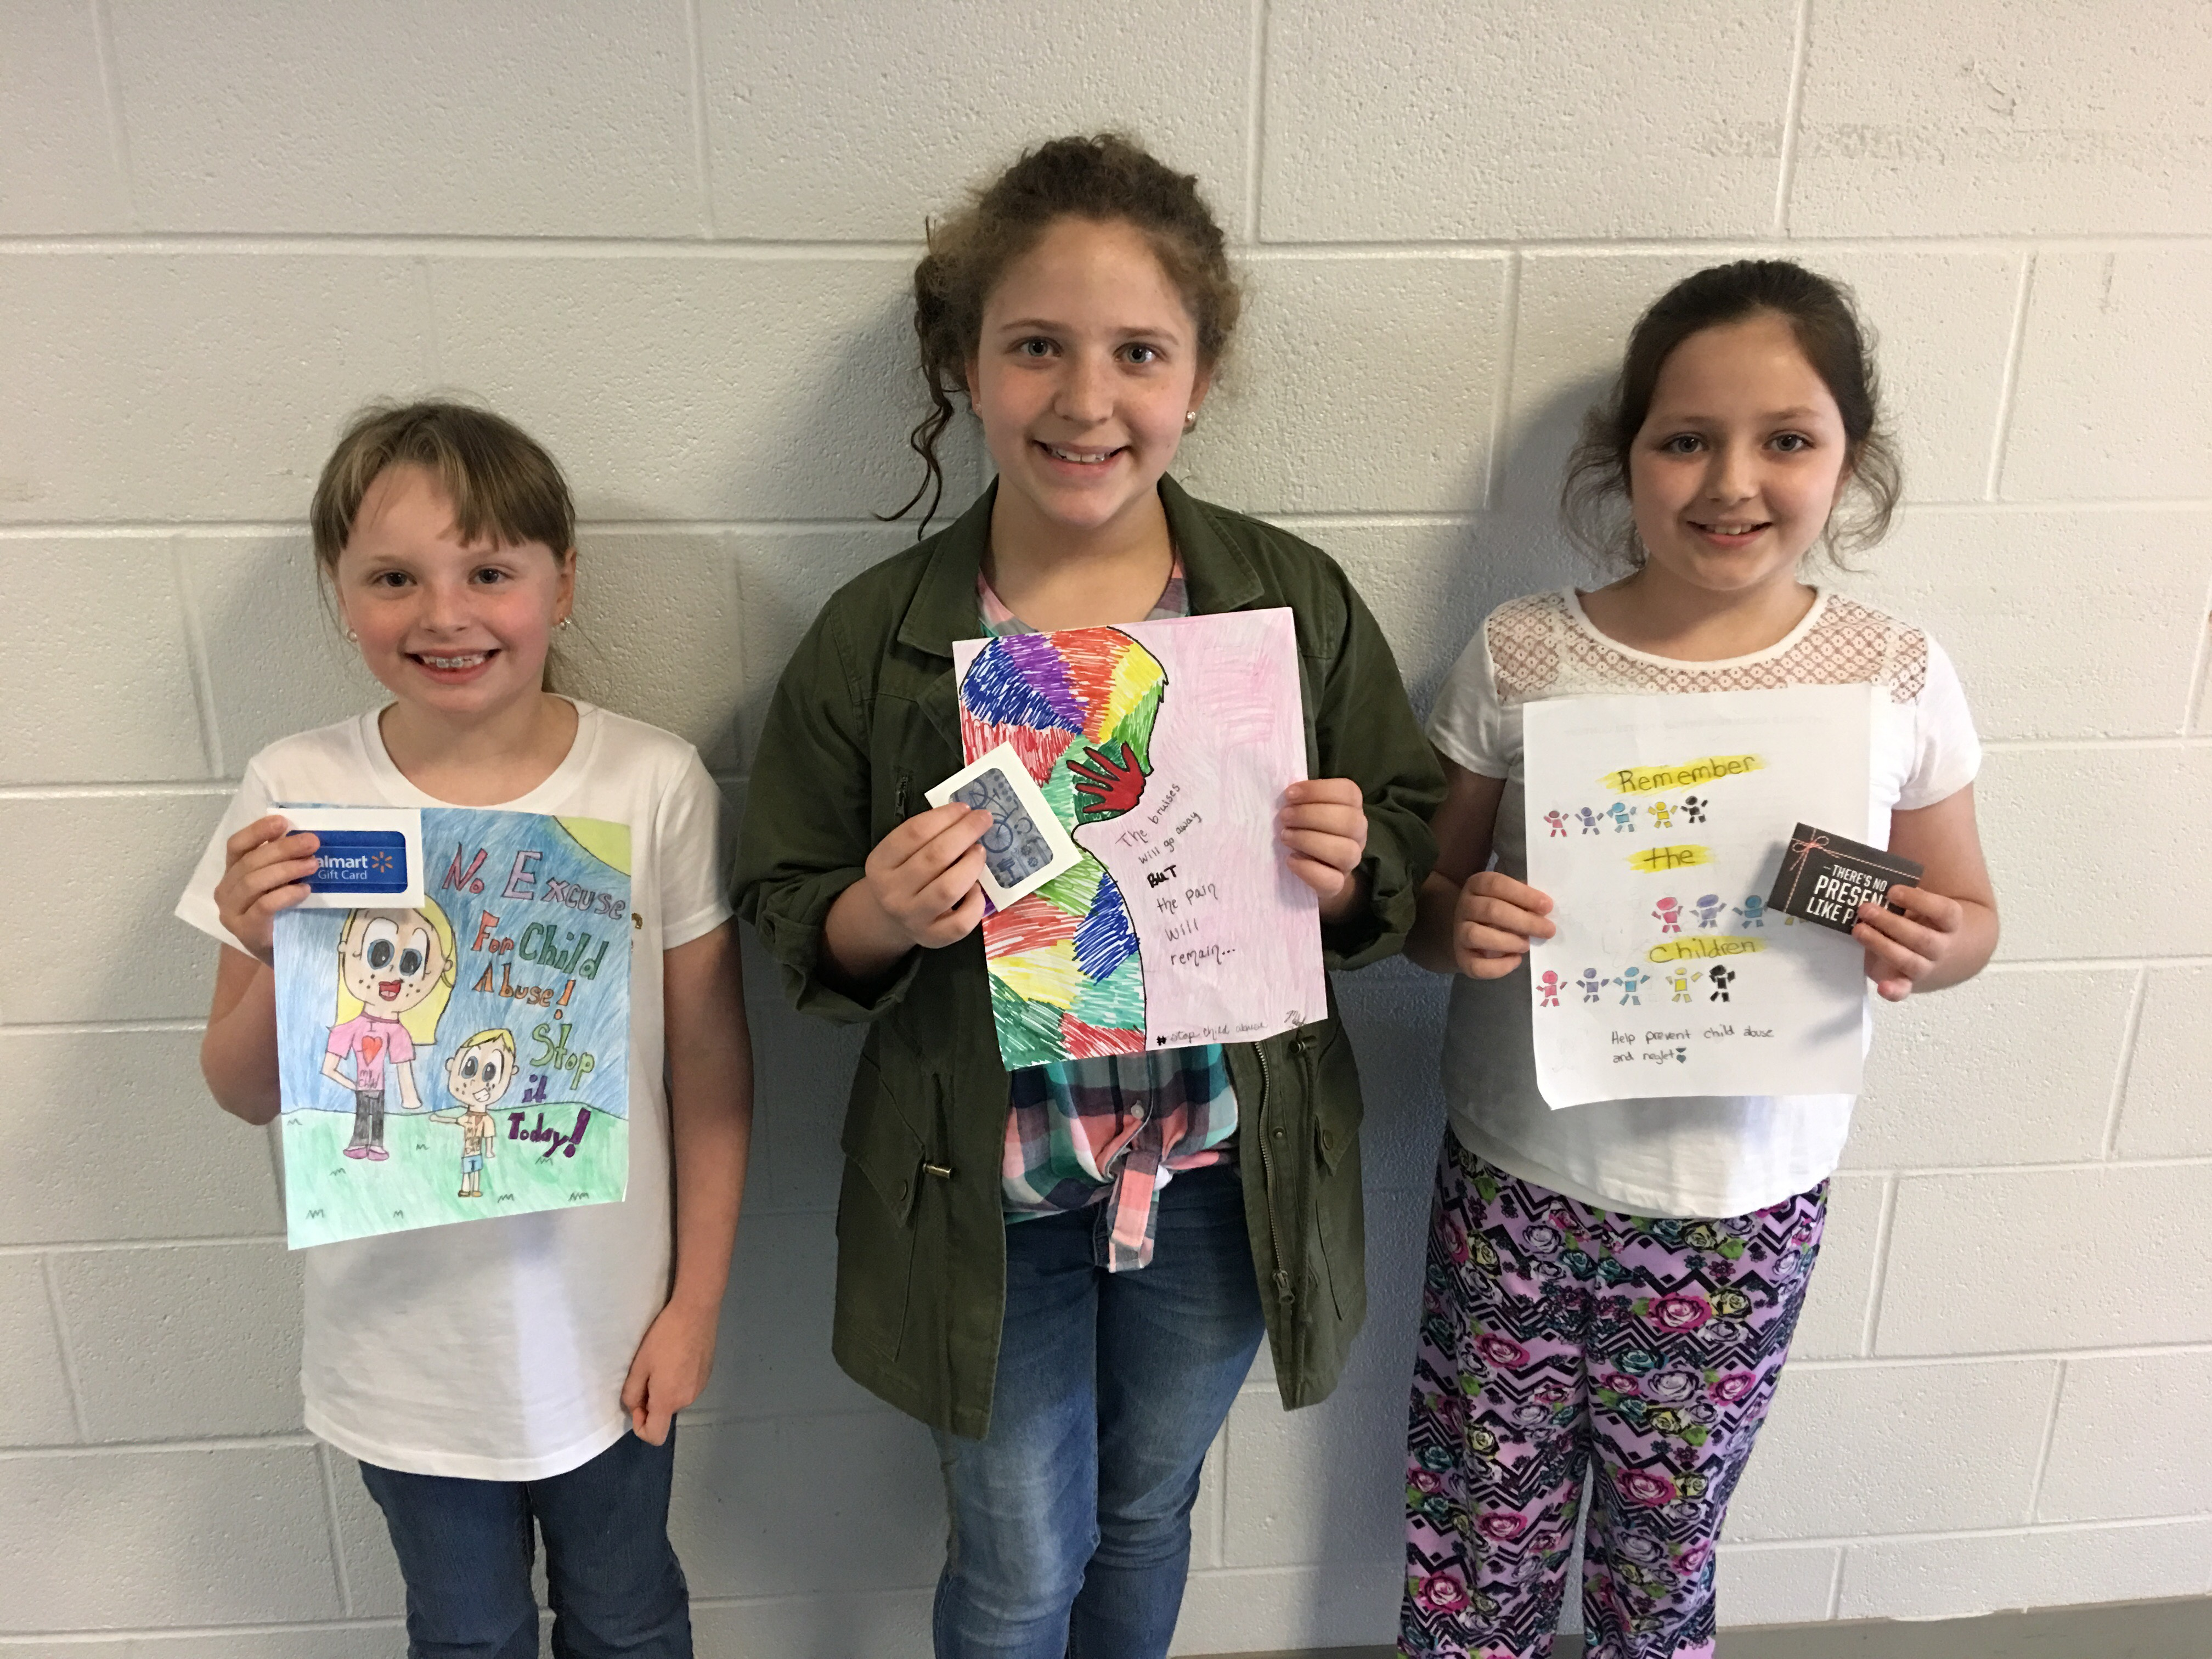 Poster contest winners Chloe Williams, Madelyn Frogge, and Leah Jones